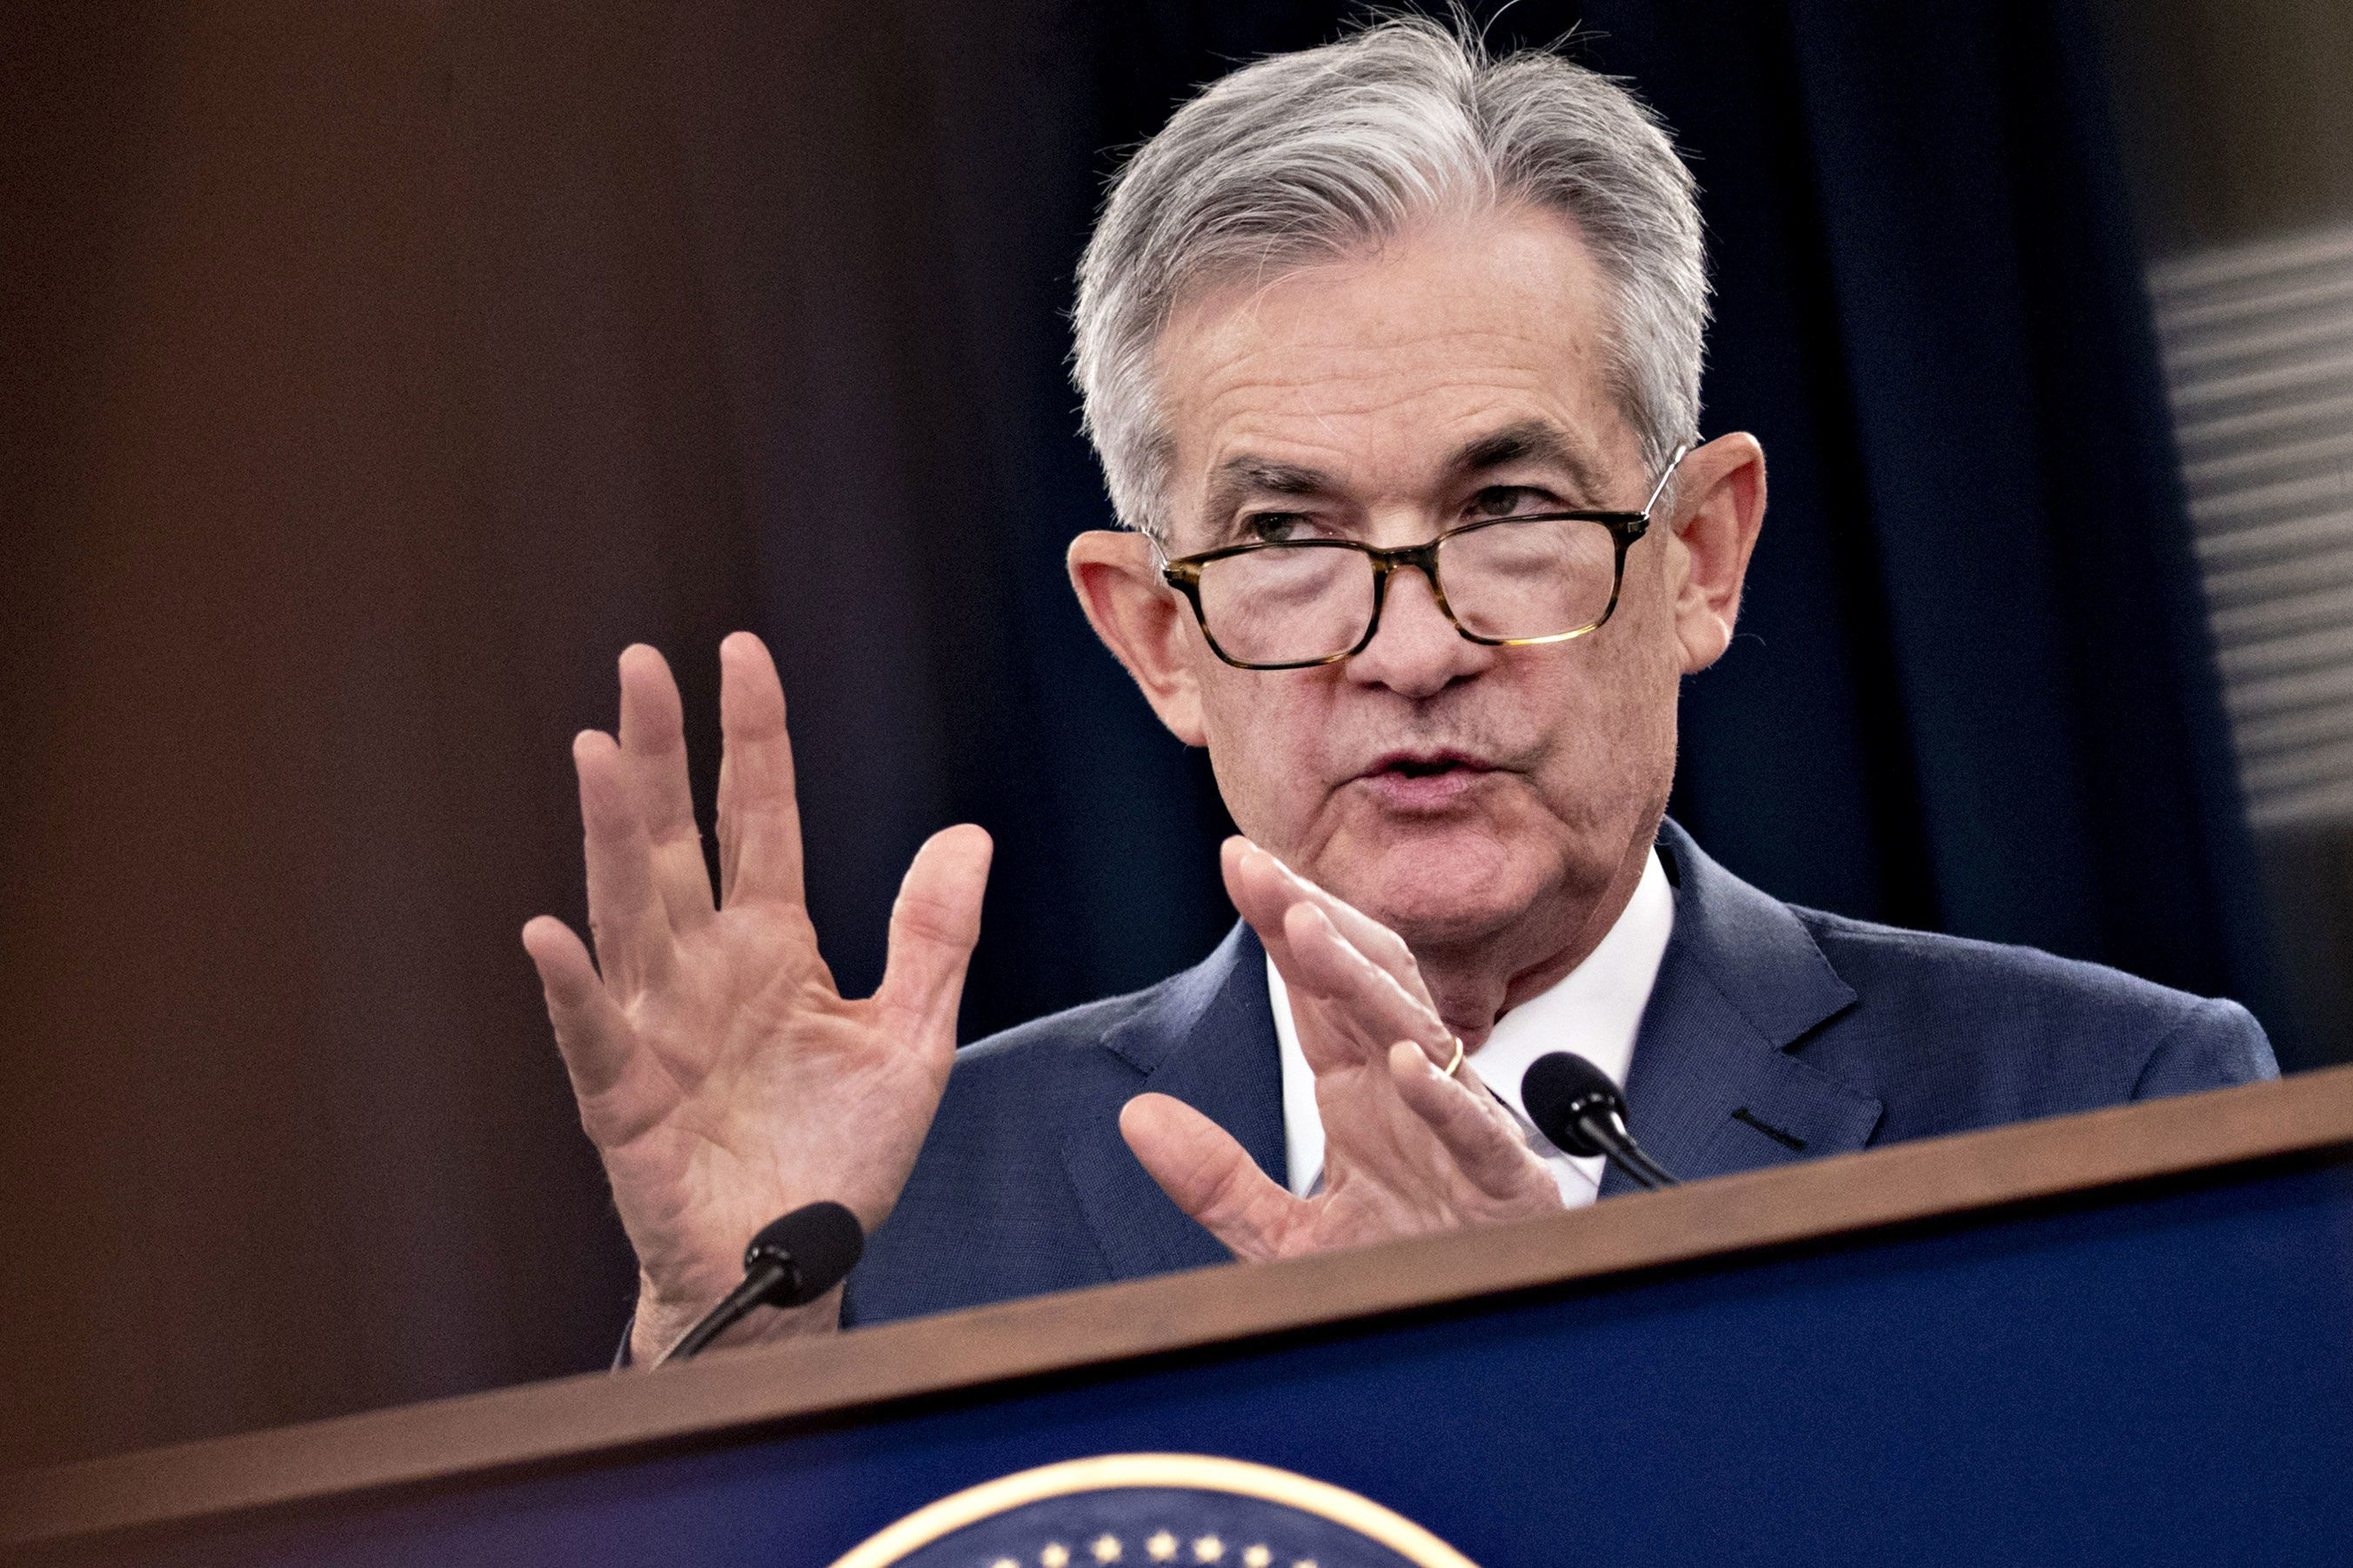 One more rate cut and then the Fed is done